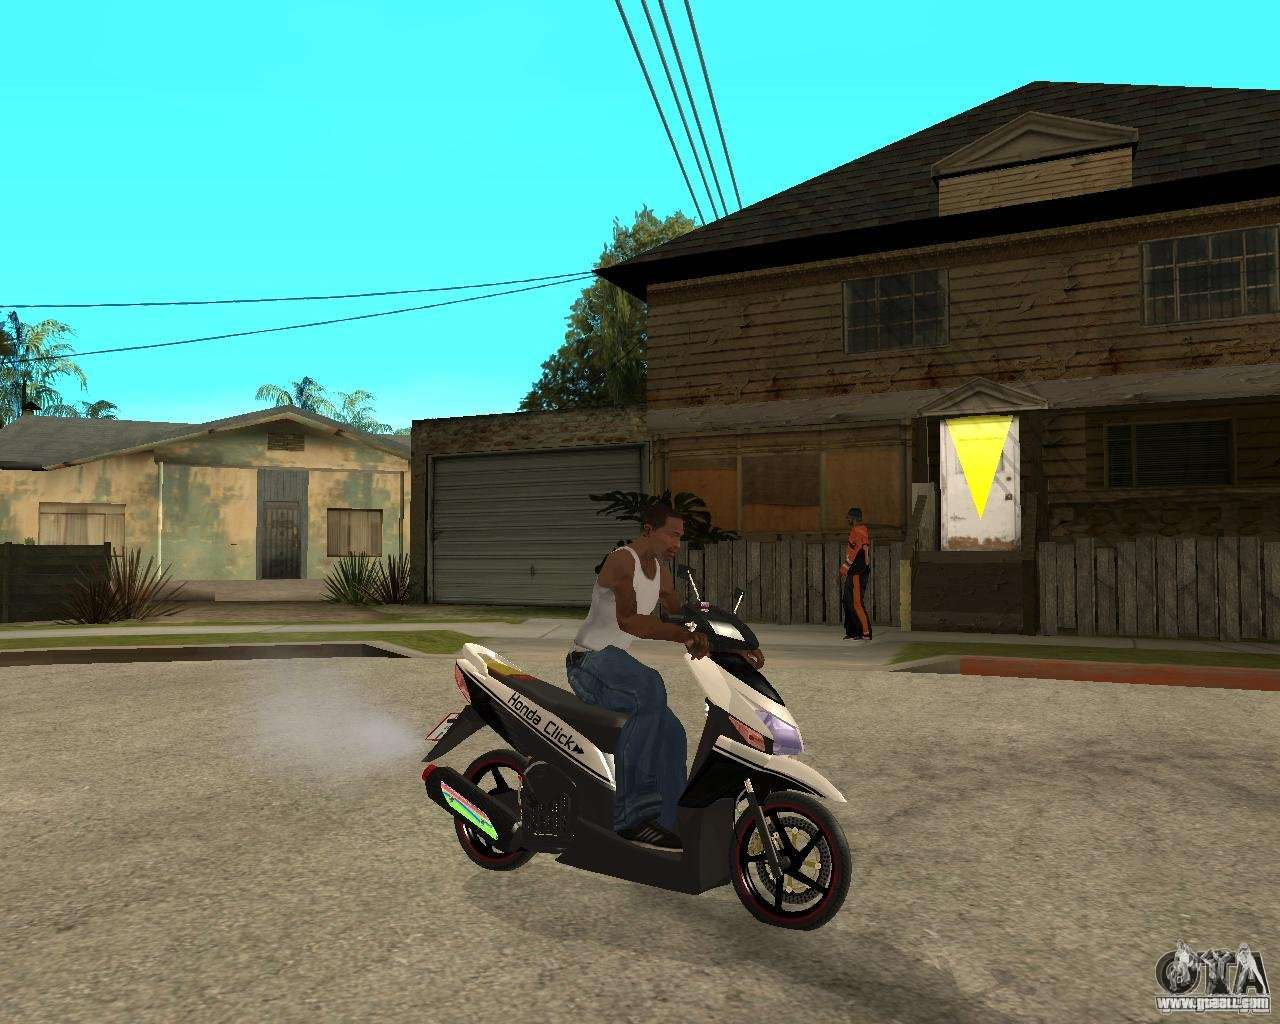 Hatsune miku in gta san andreas funny hot coffe glish - 1 10